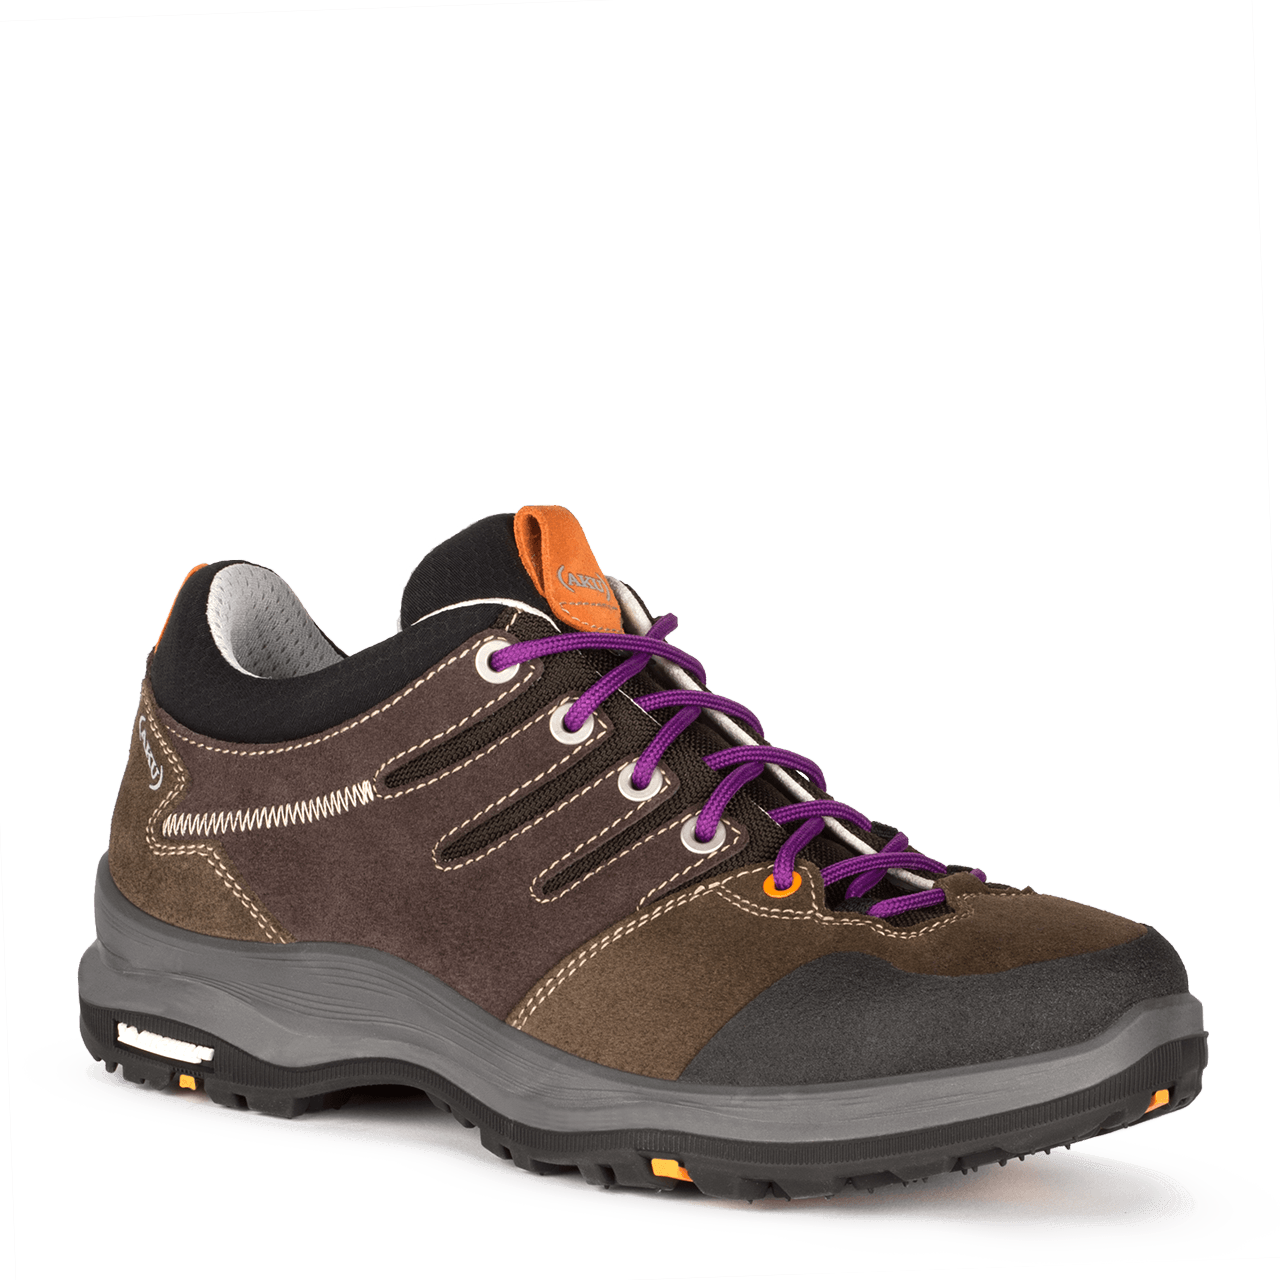 Montera Low GTX Wmns - Trailblazer Outdoors, Pickering